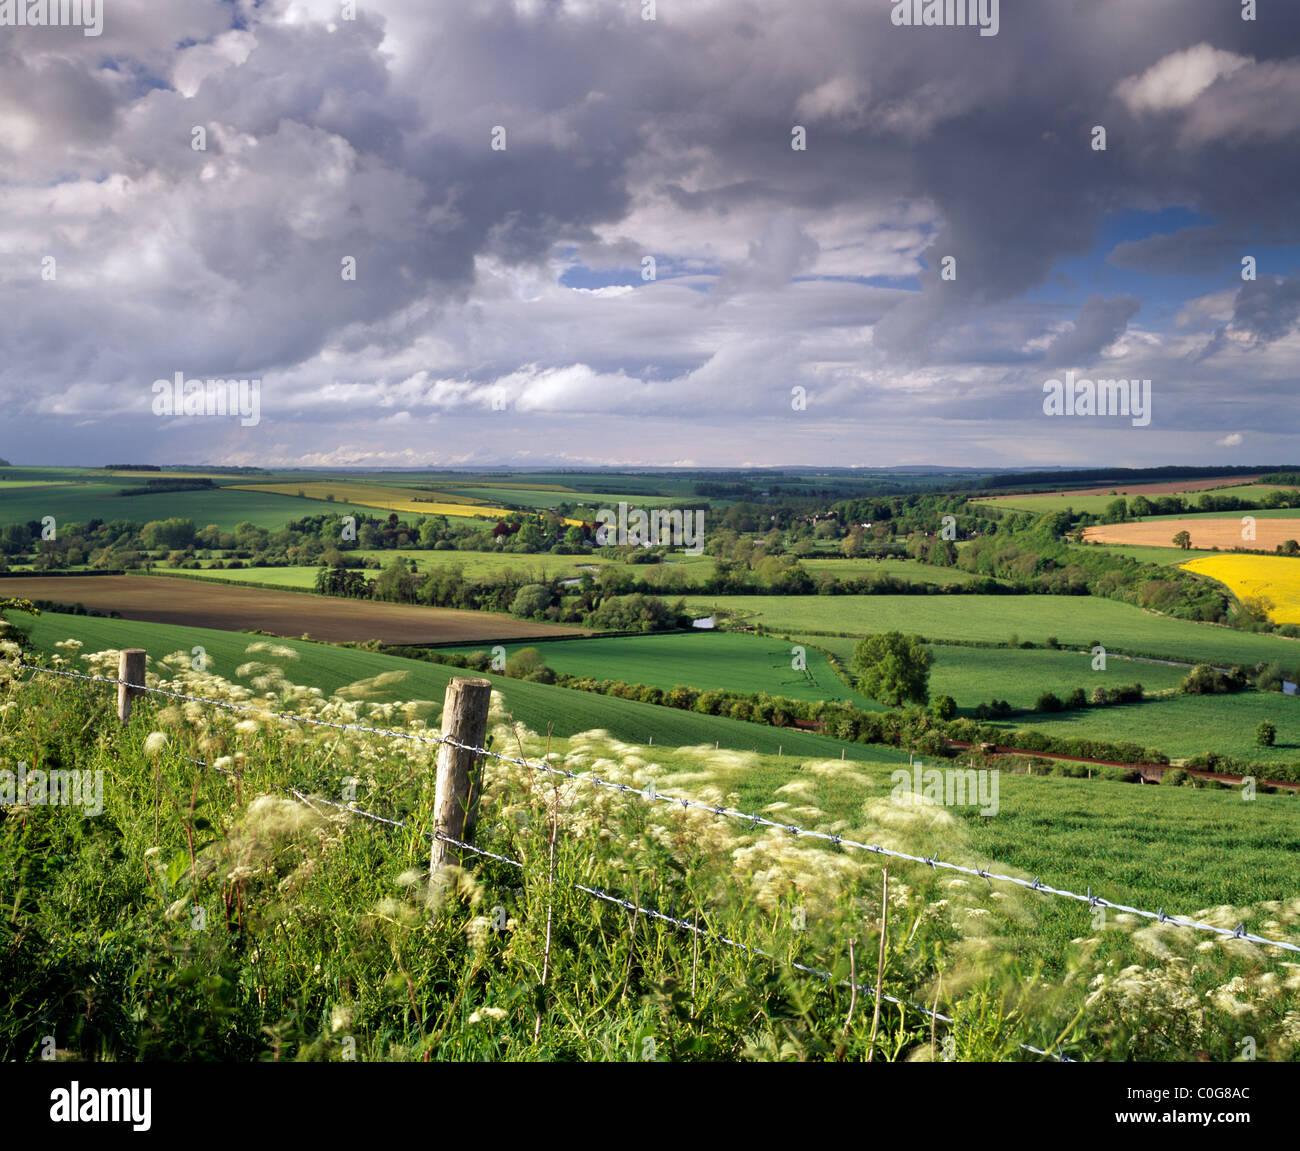 A view of the Wylye Valley in Wiltshire at Stapleford. Stock Photo